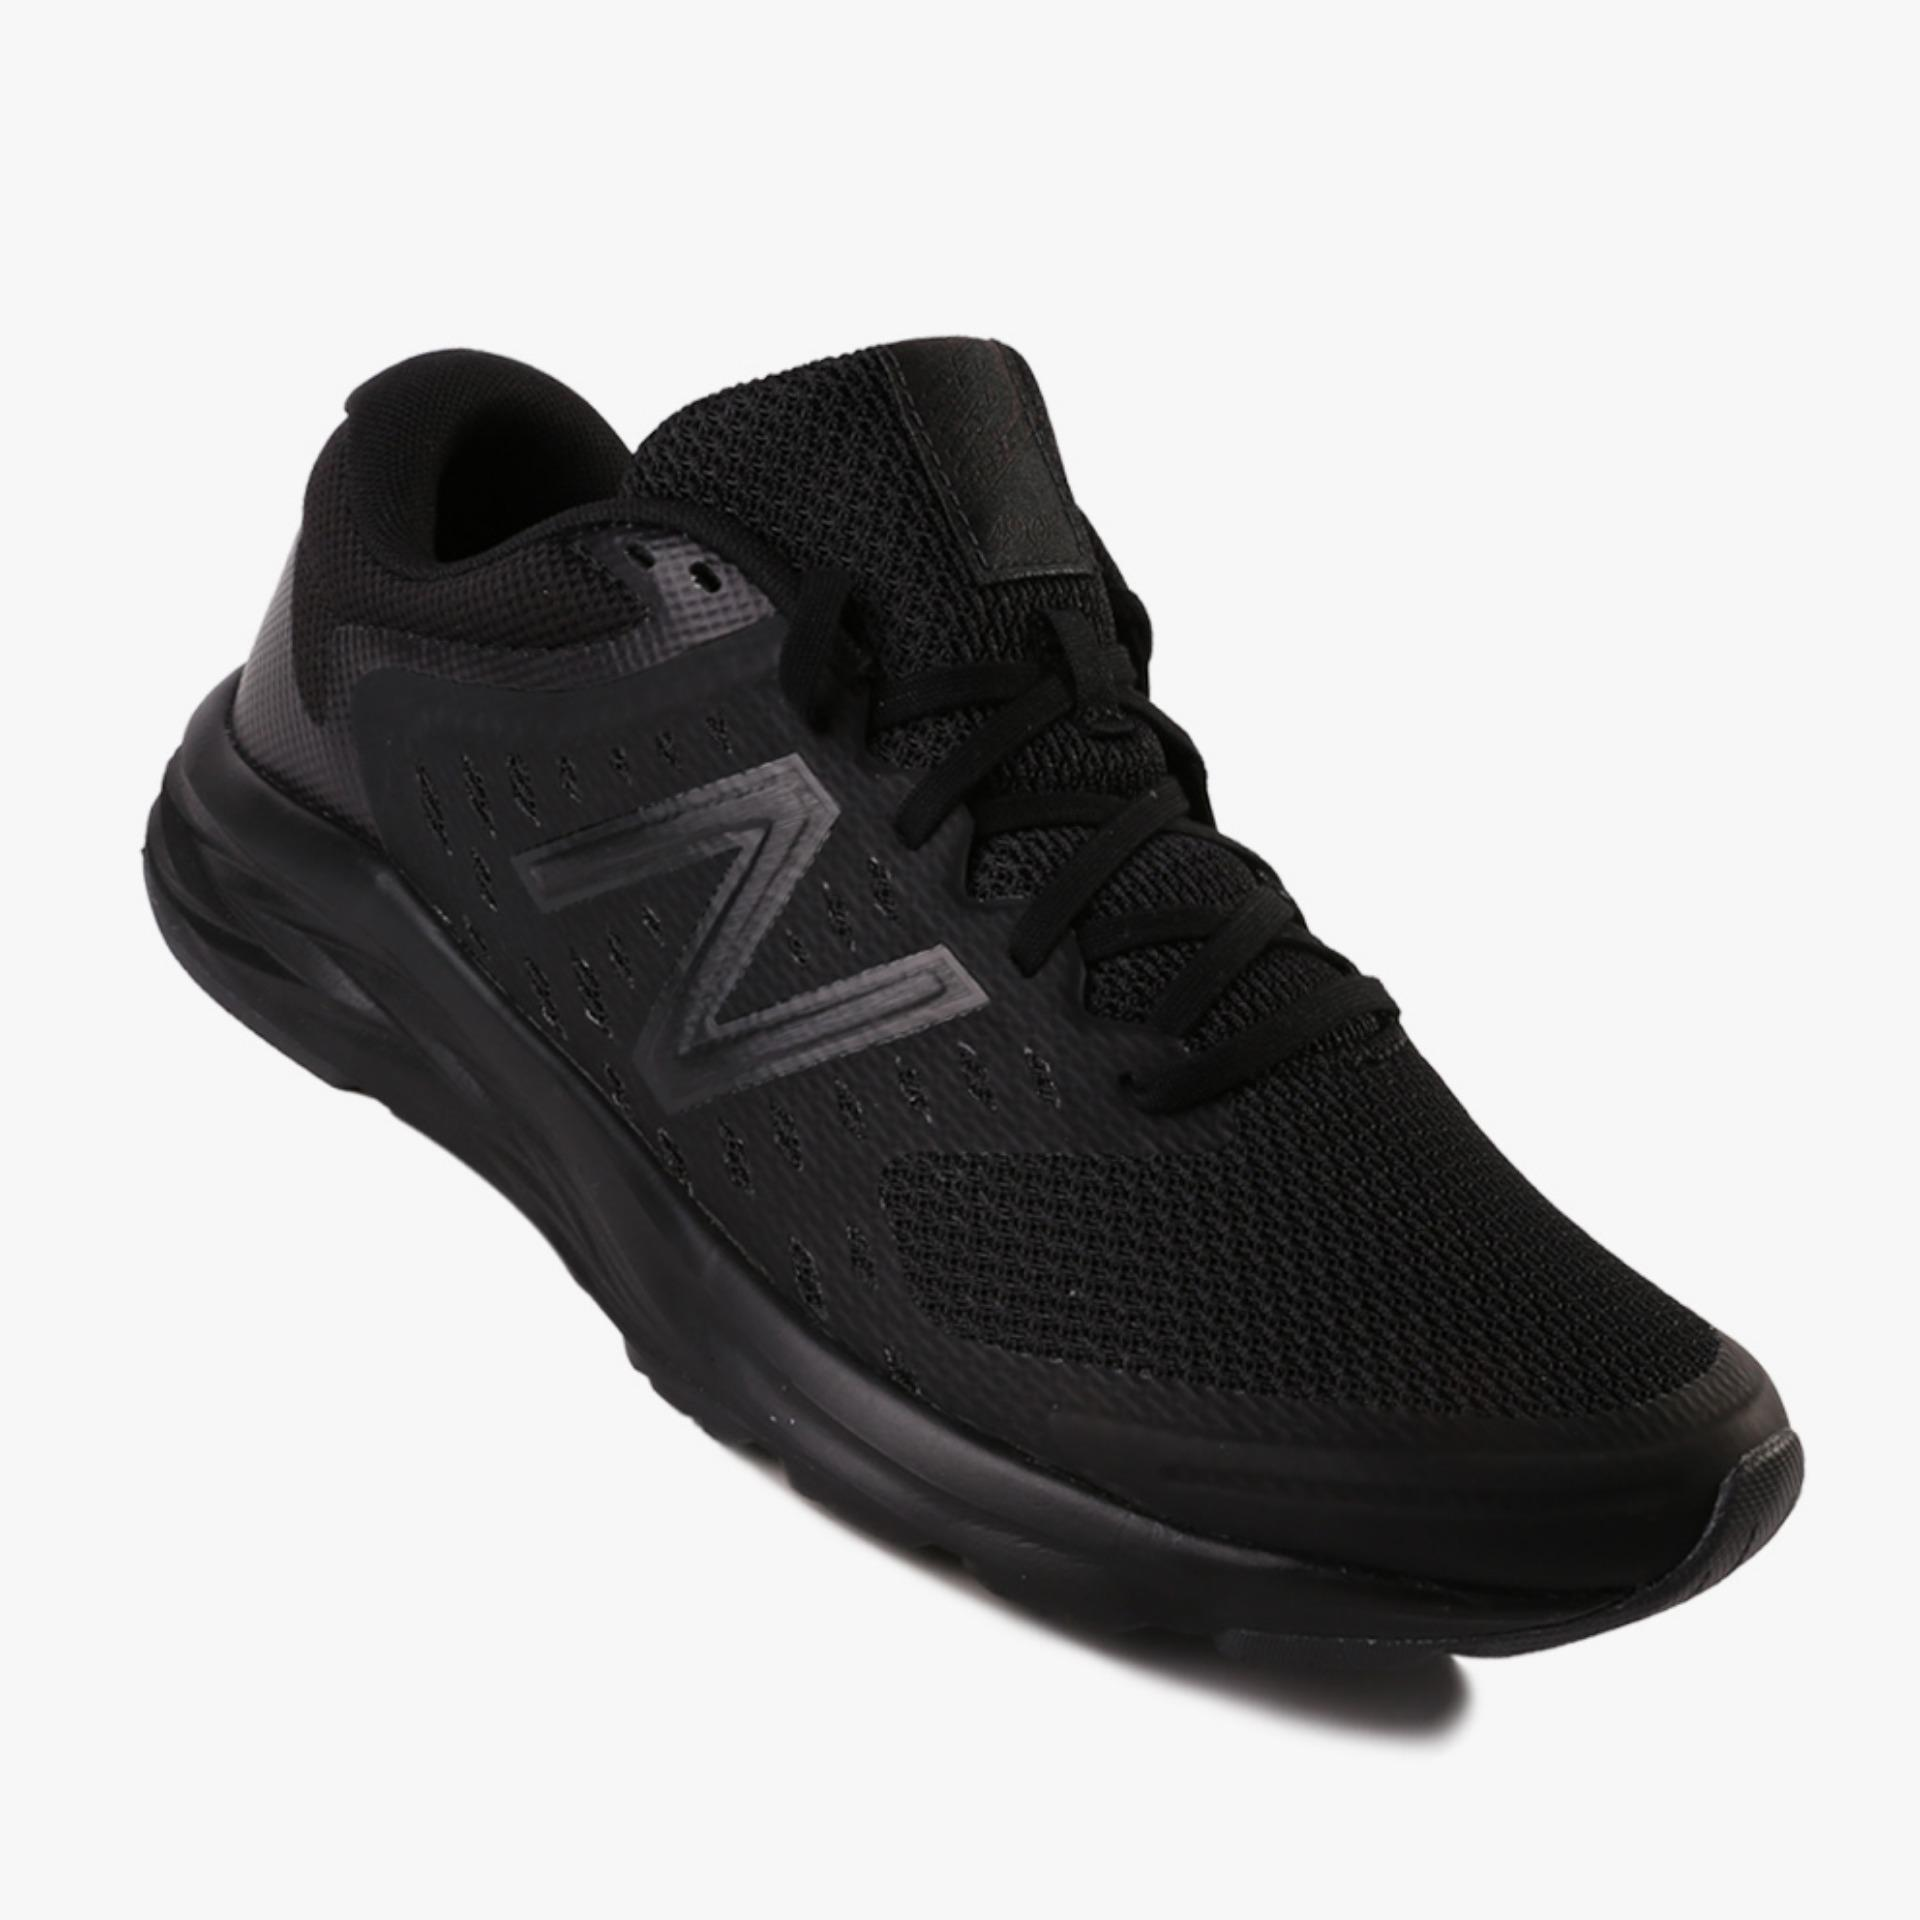 New Balance Speed Ride 490 V5 Men S Running Shoes Hitam Terbaru